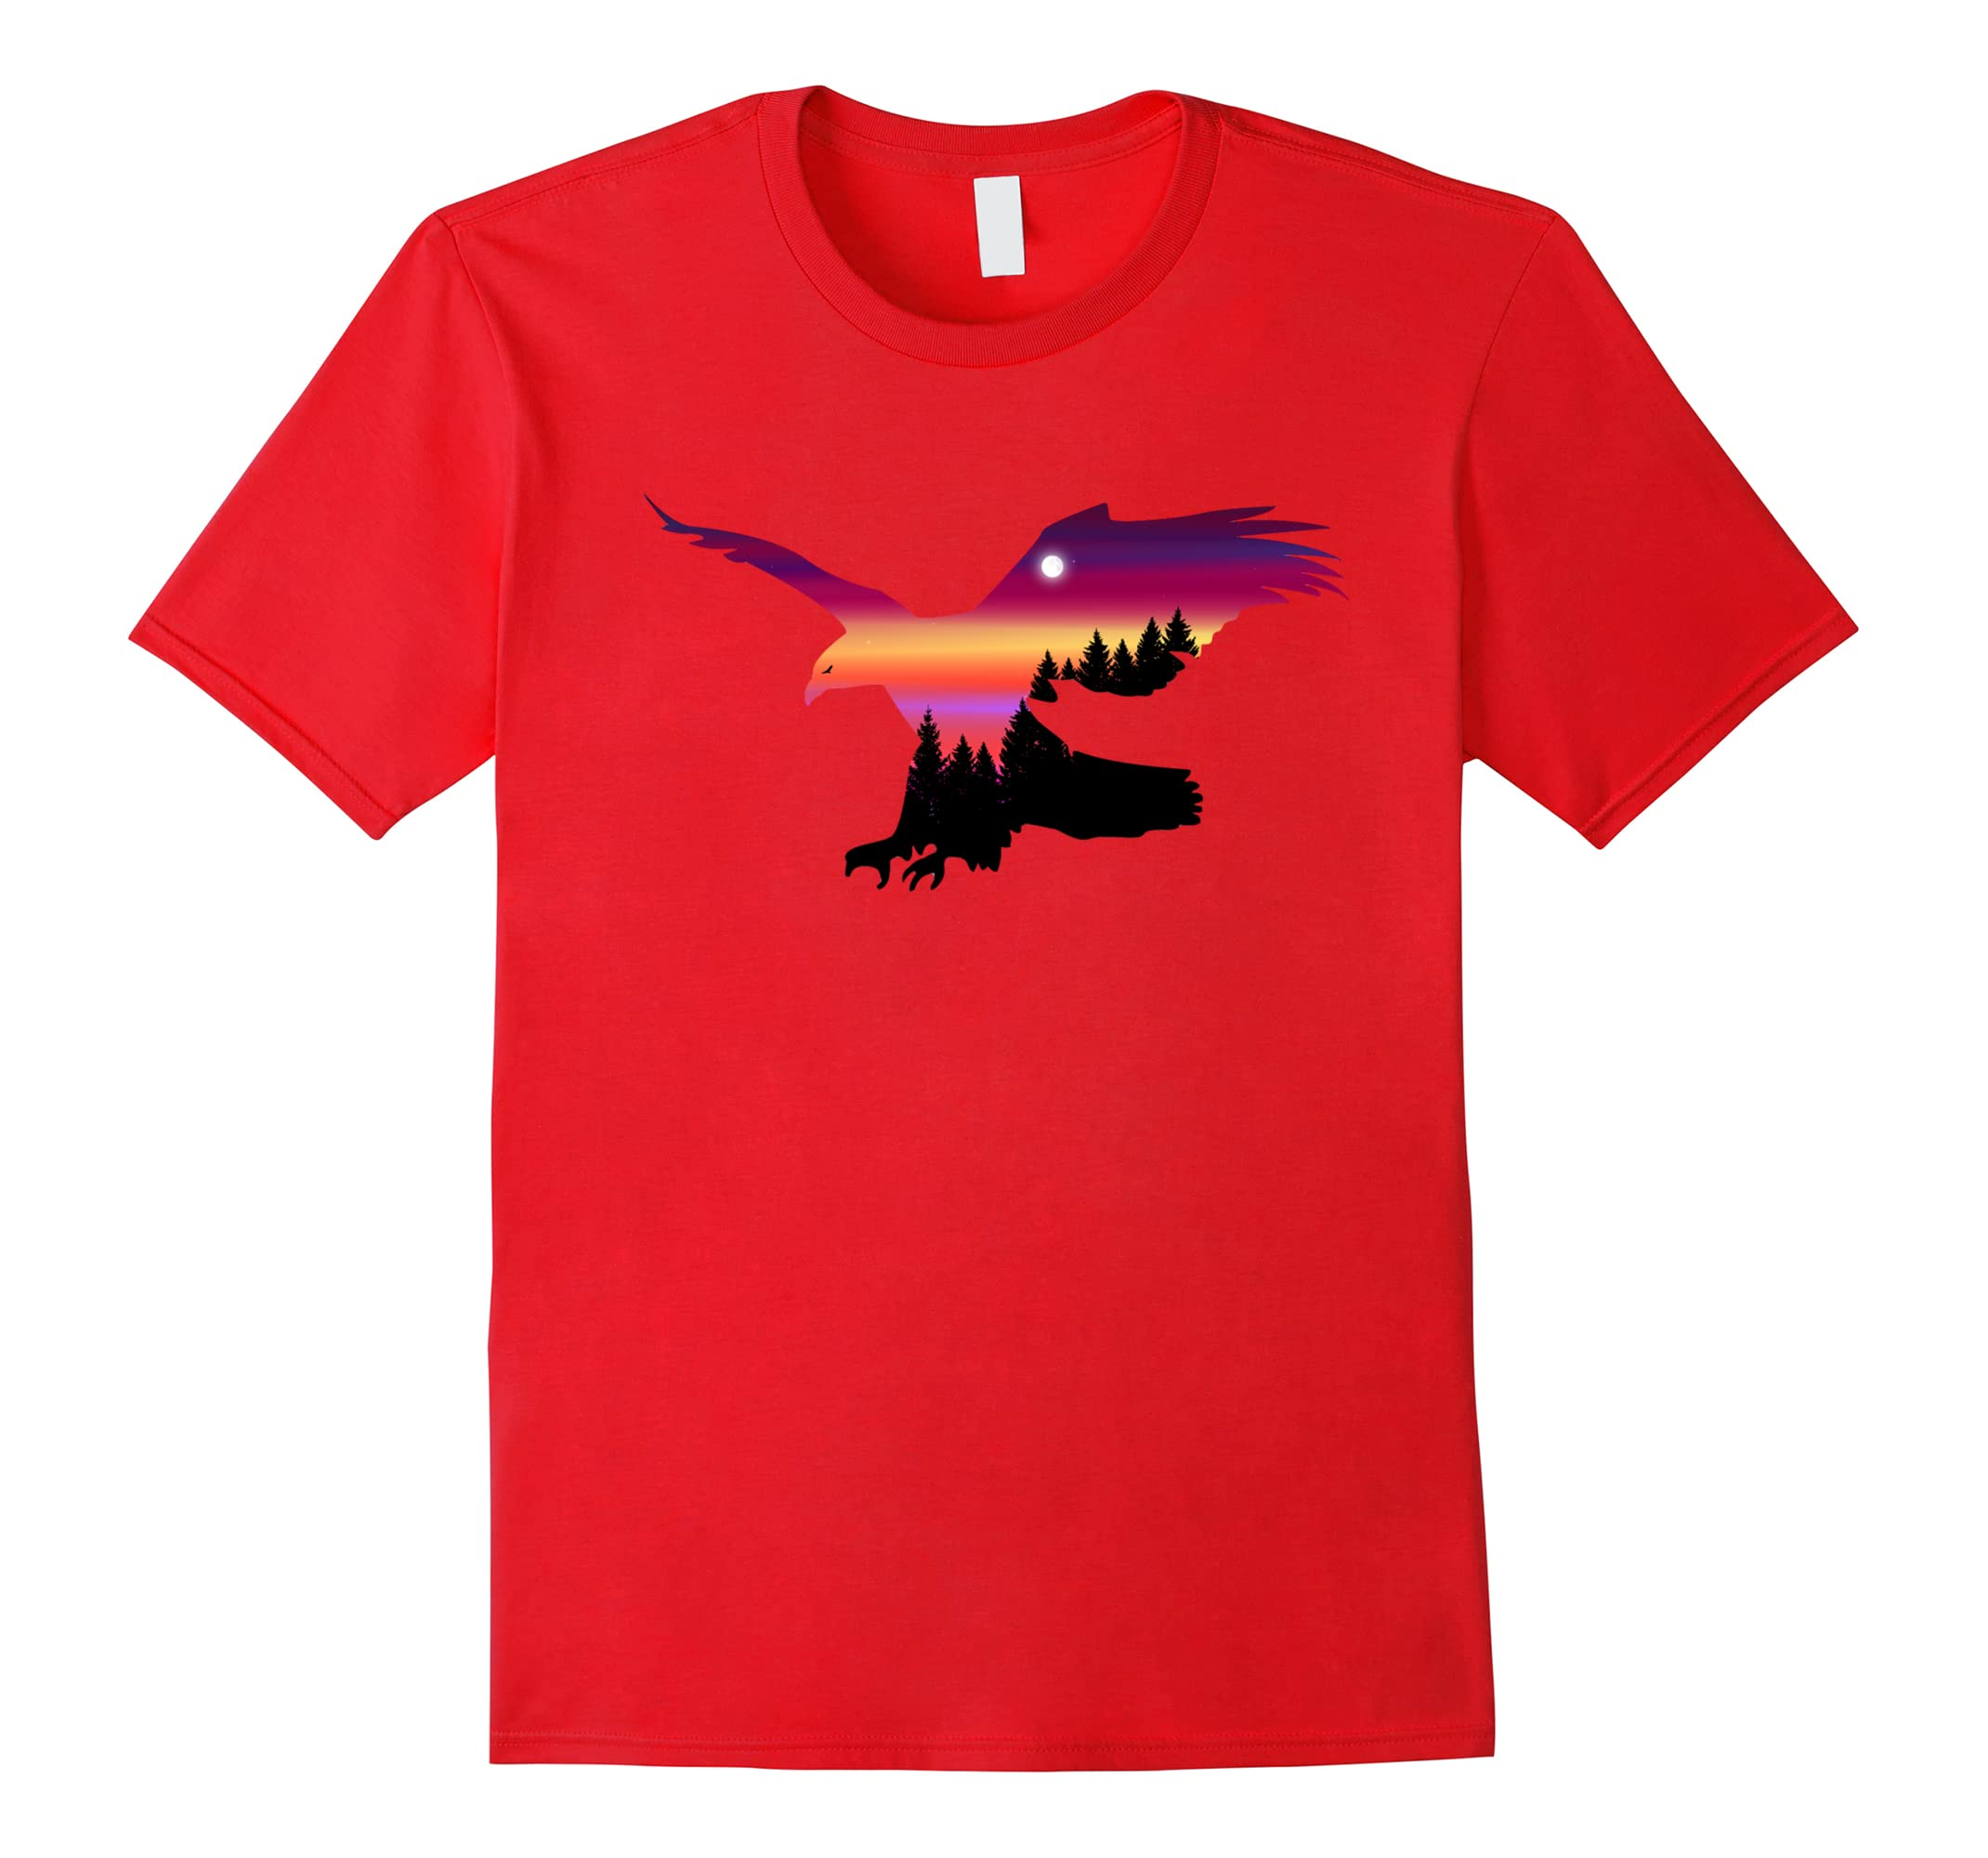 Magnificent Flying Eagle Surreal Sky Silhouette T-Shirt-RT